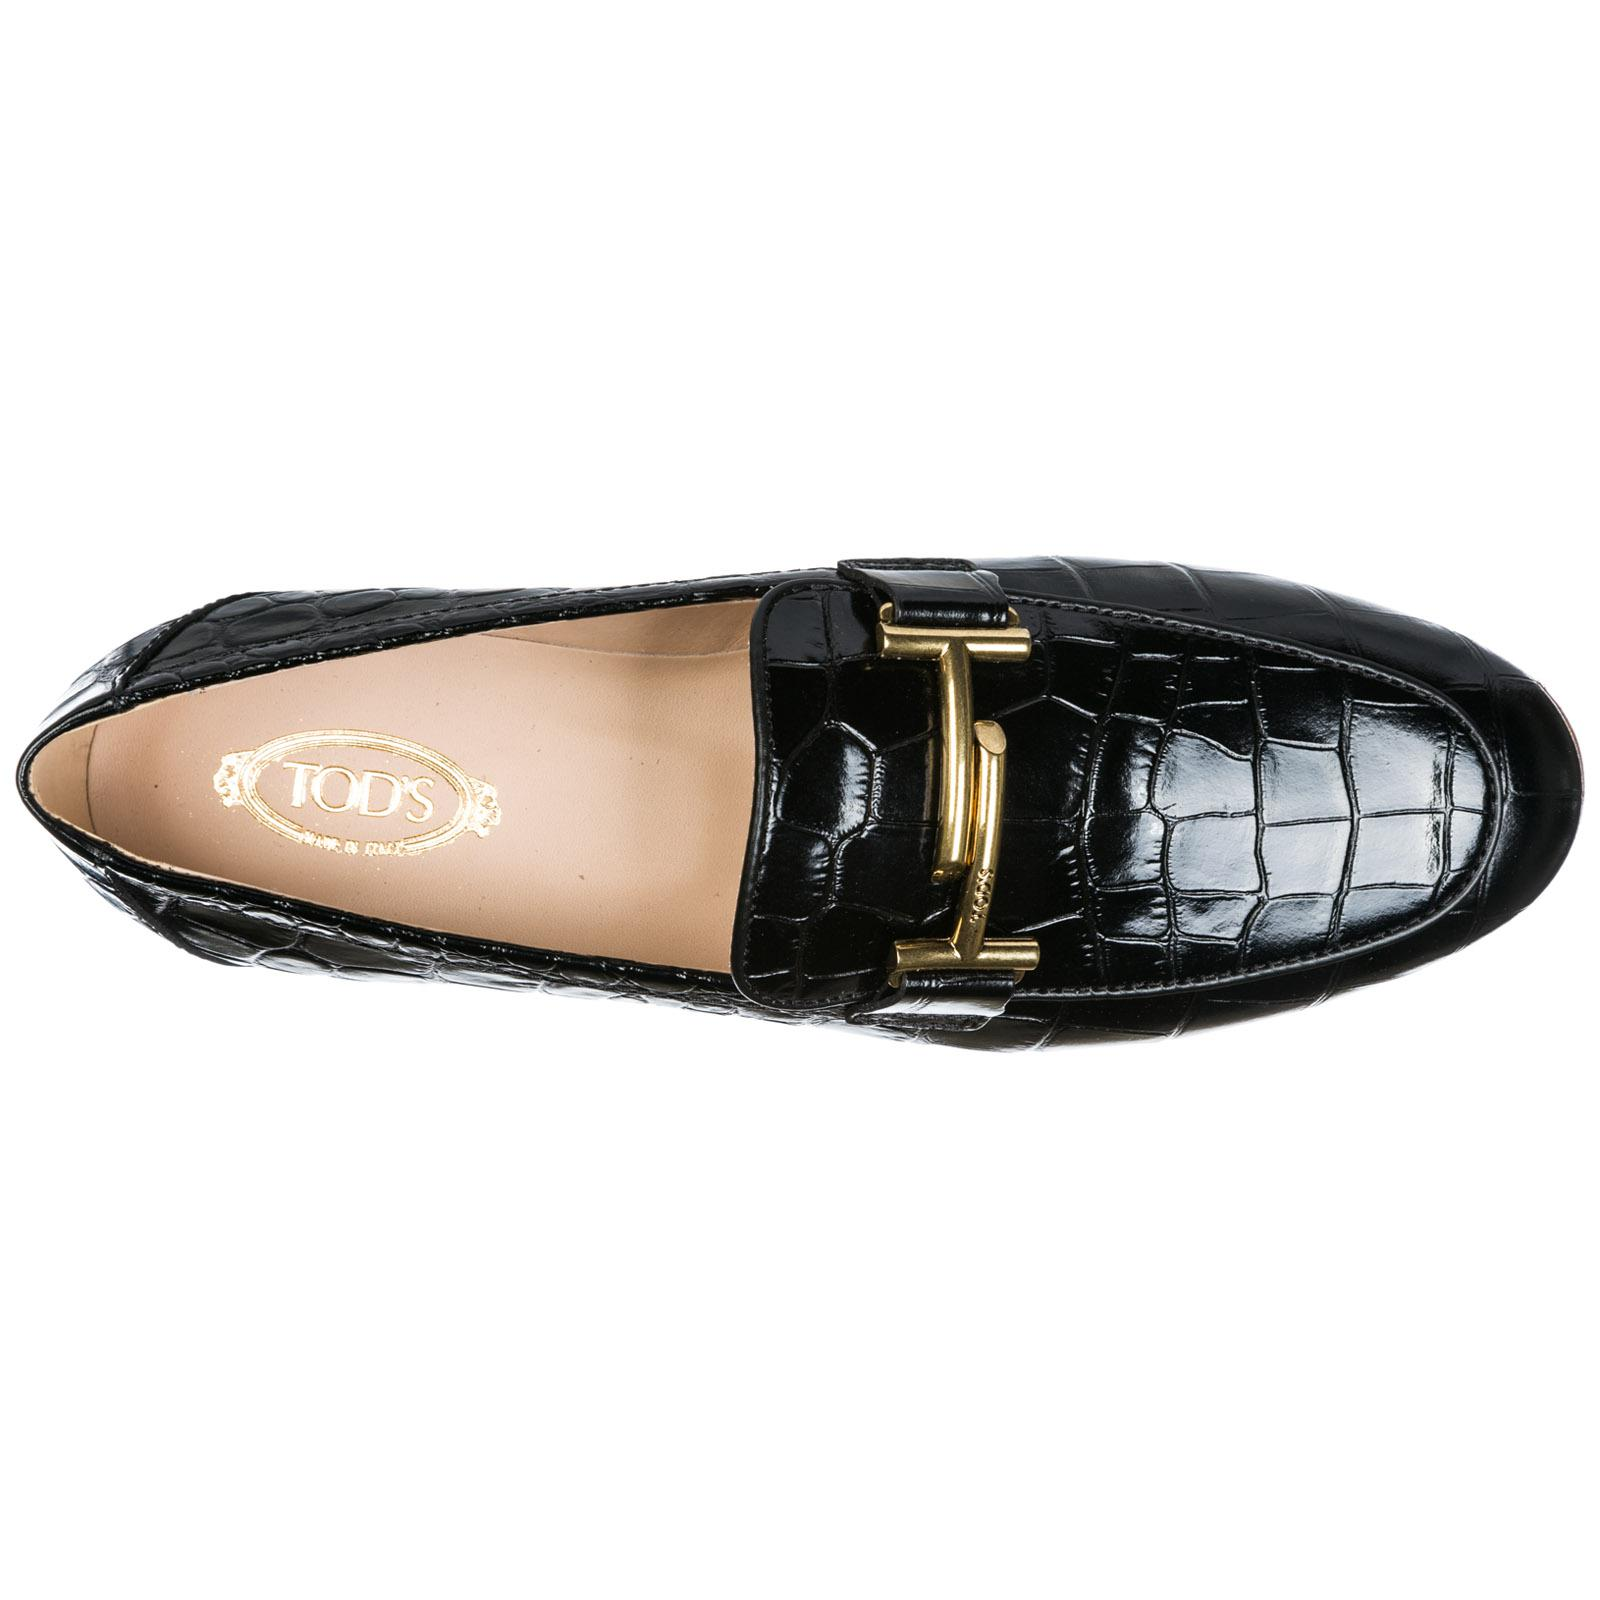 36b0dc2b6c7 ... Leather Loafers Moccasins - Lyst. View fullscreen